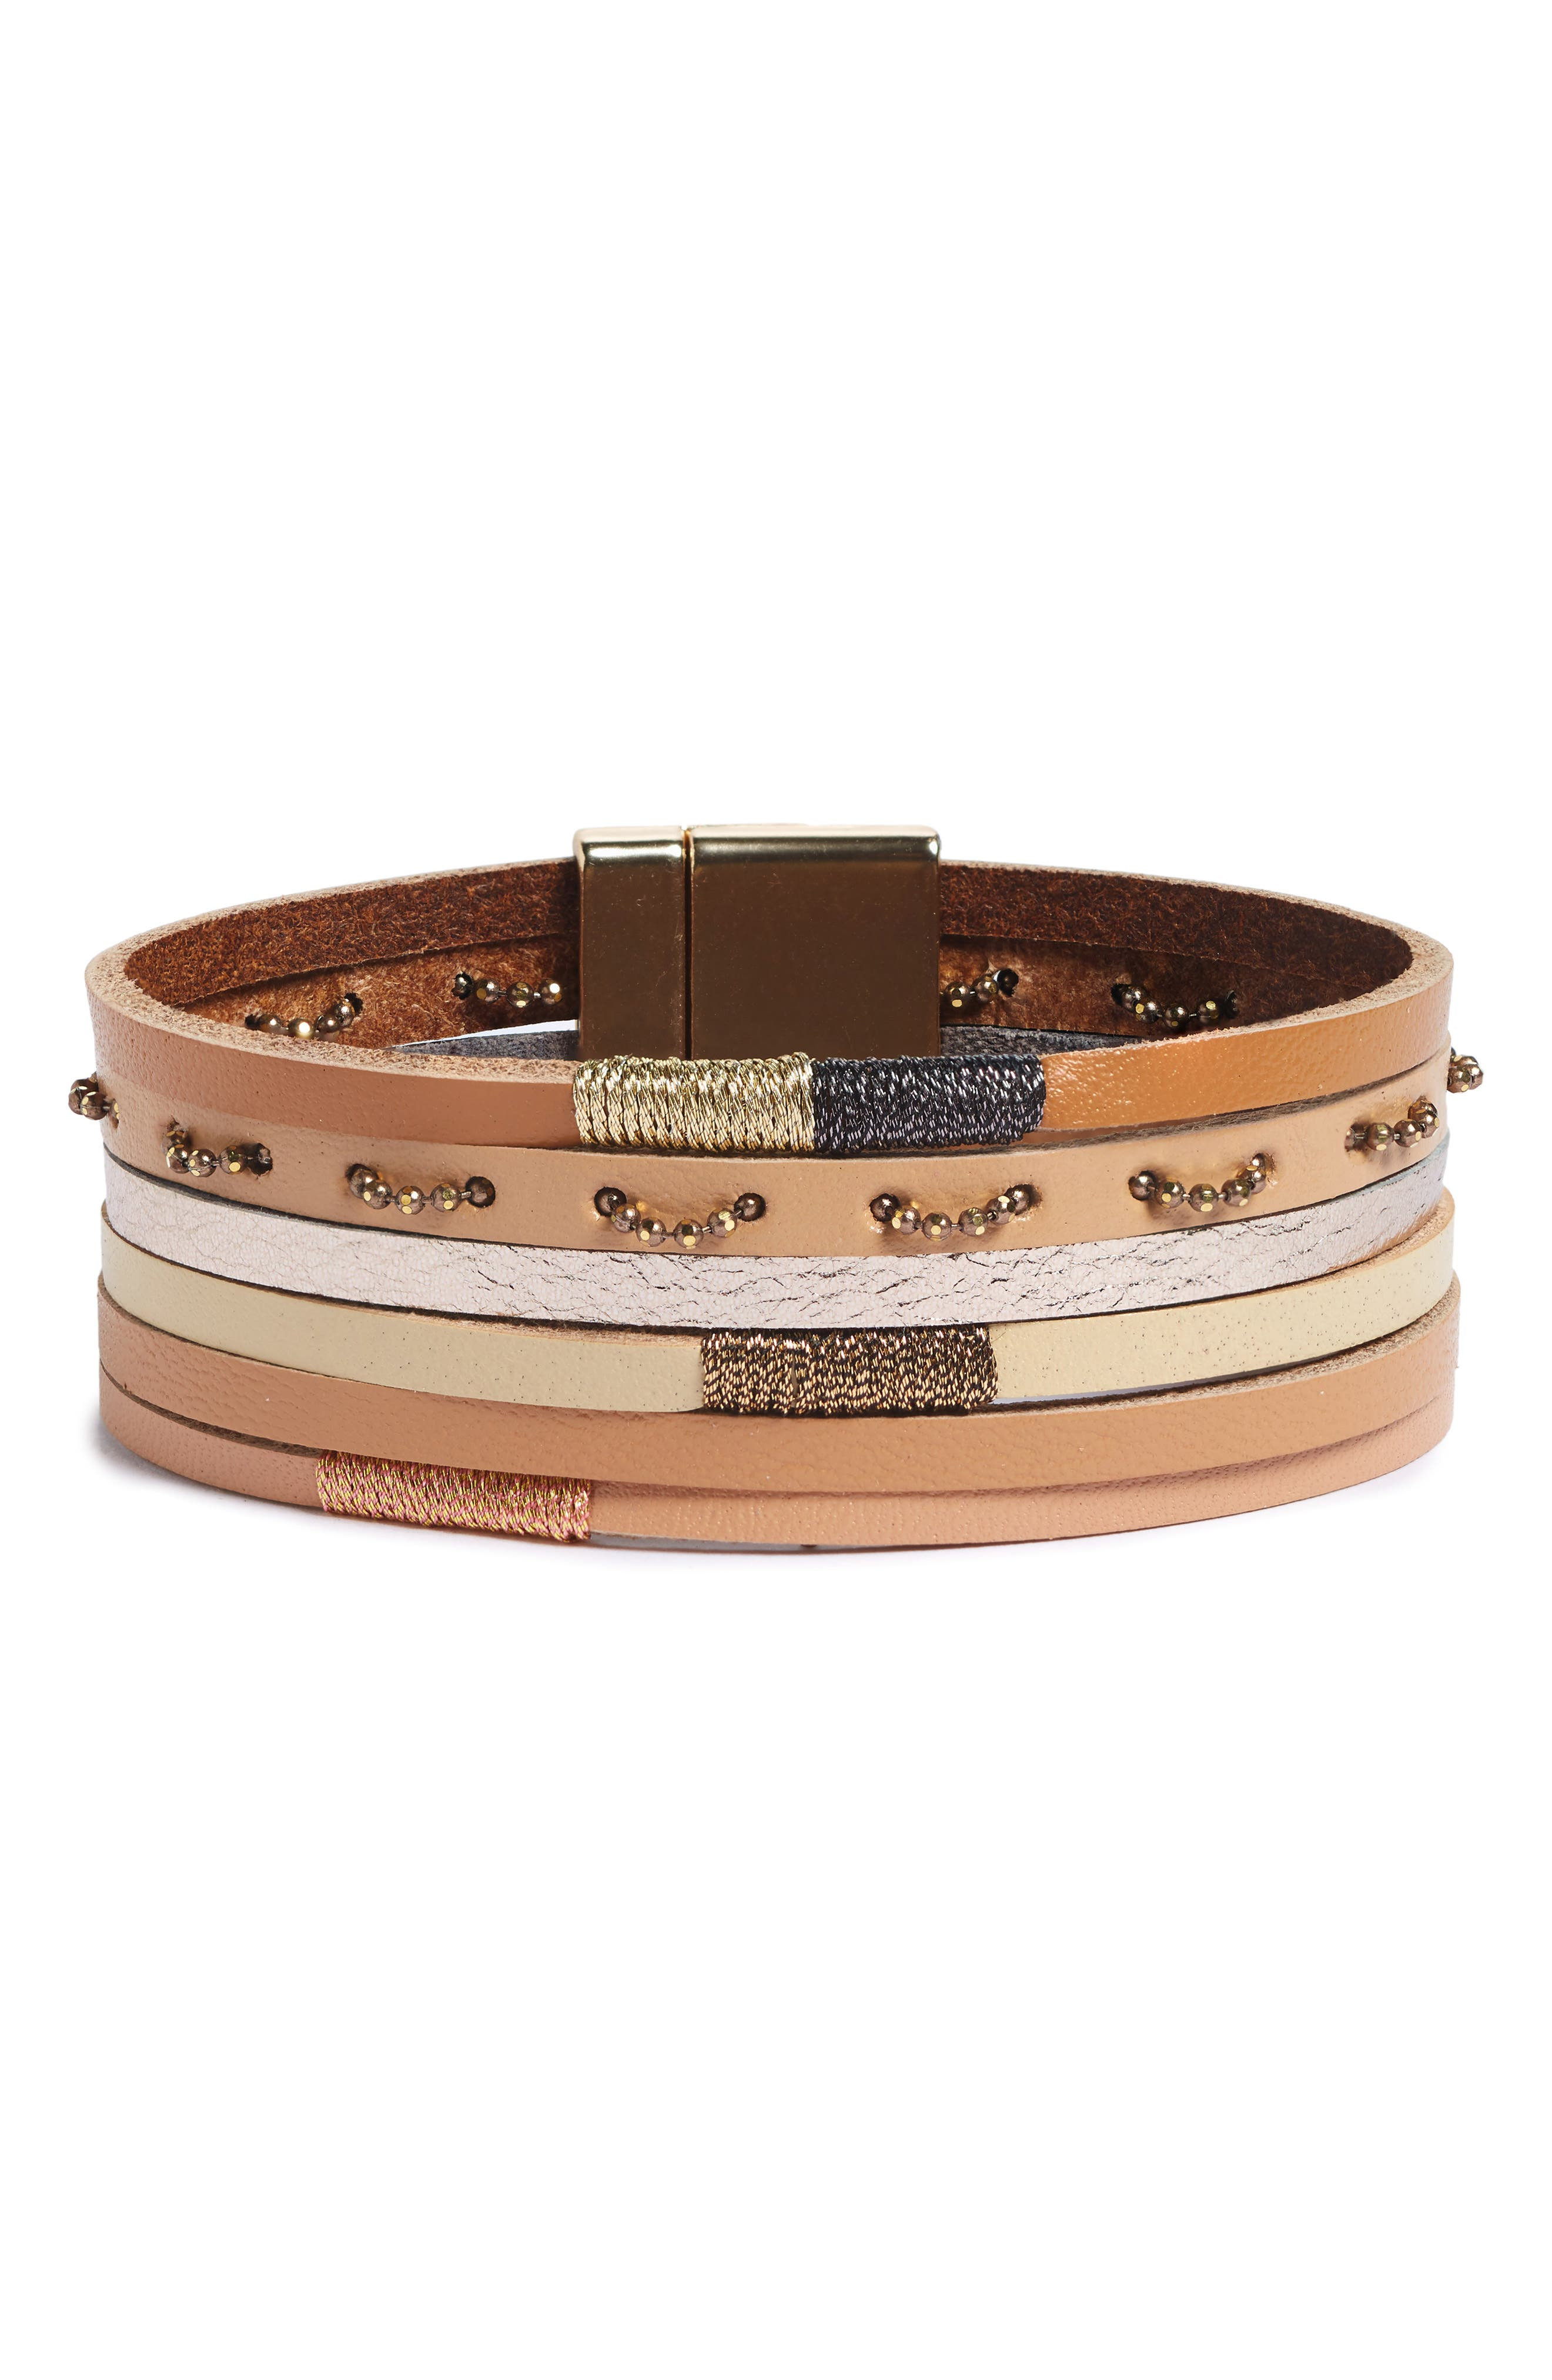 Multi Row Leather Bracelet,                         Main,                         color, 900